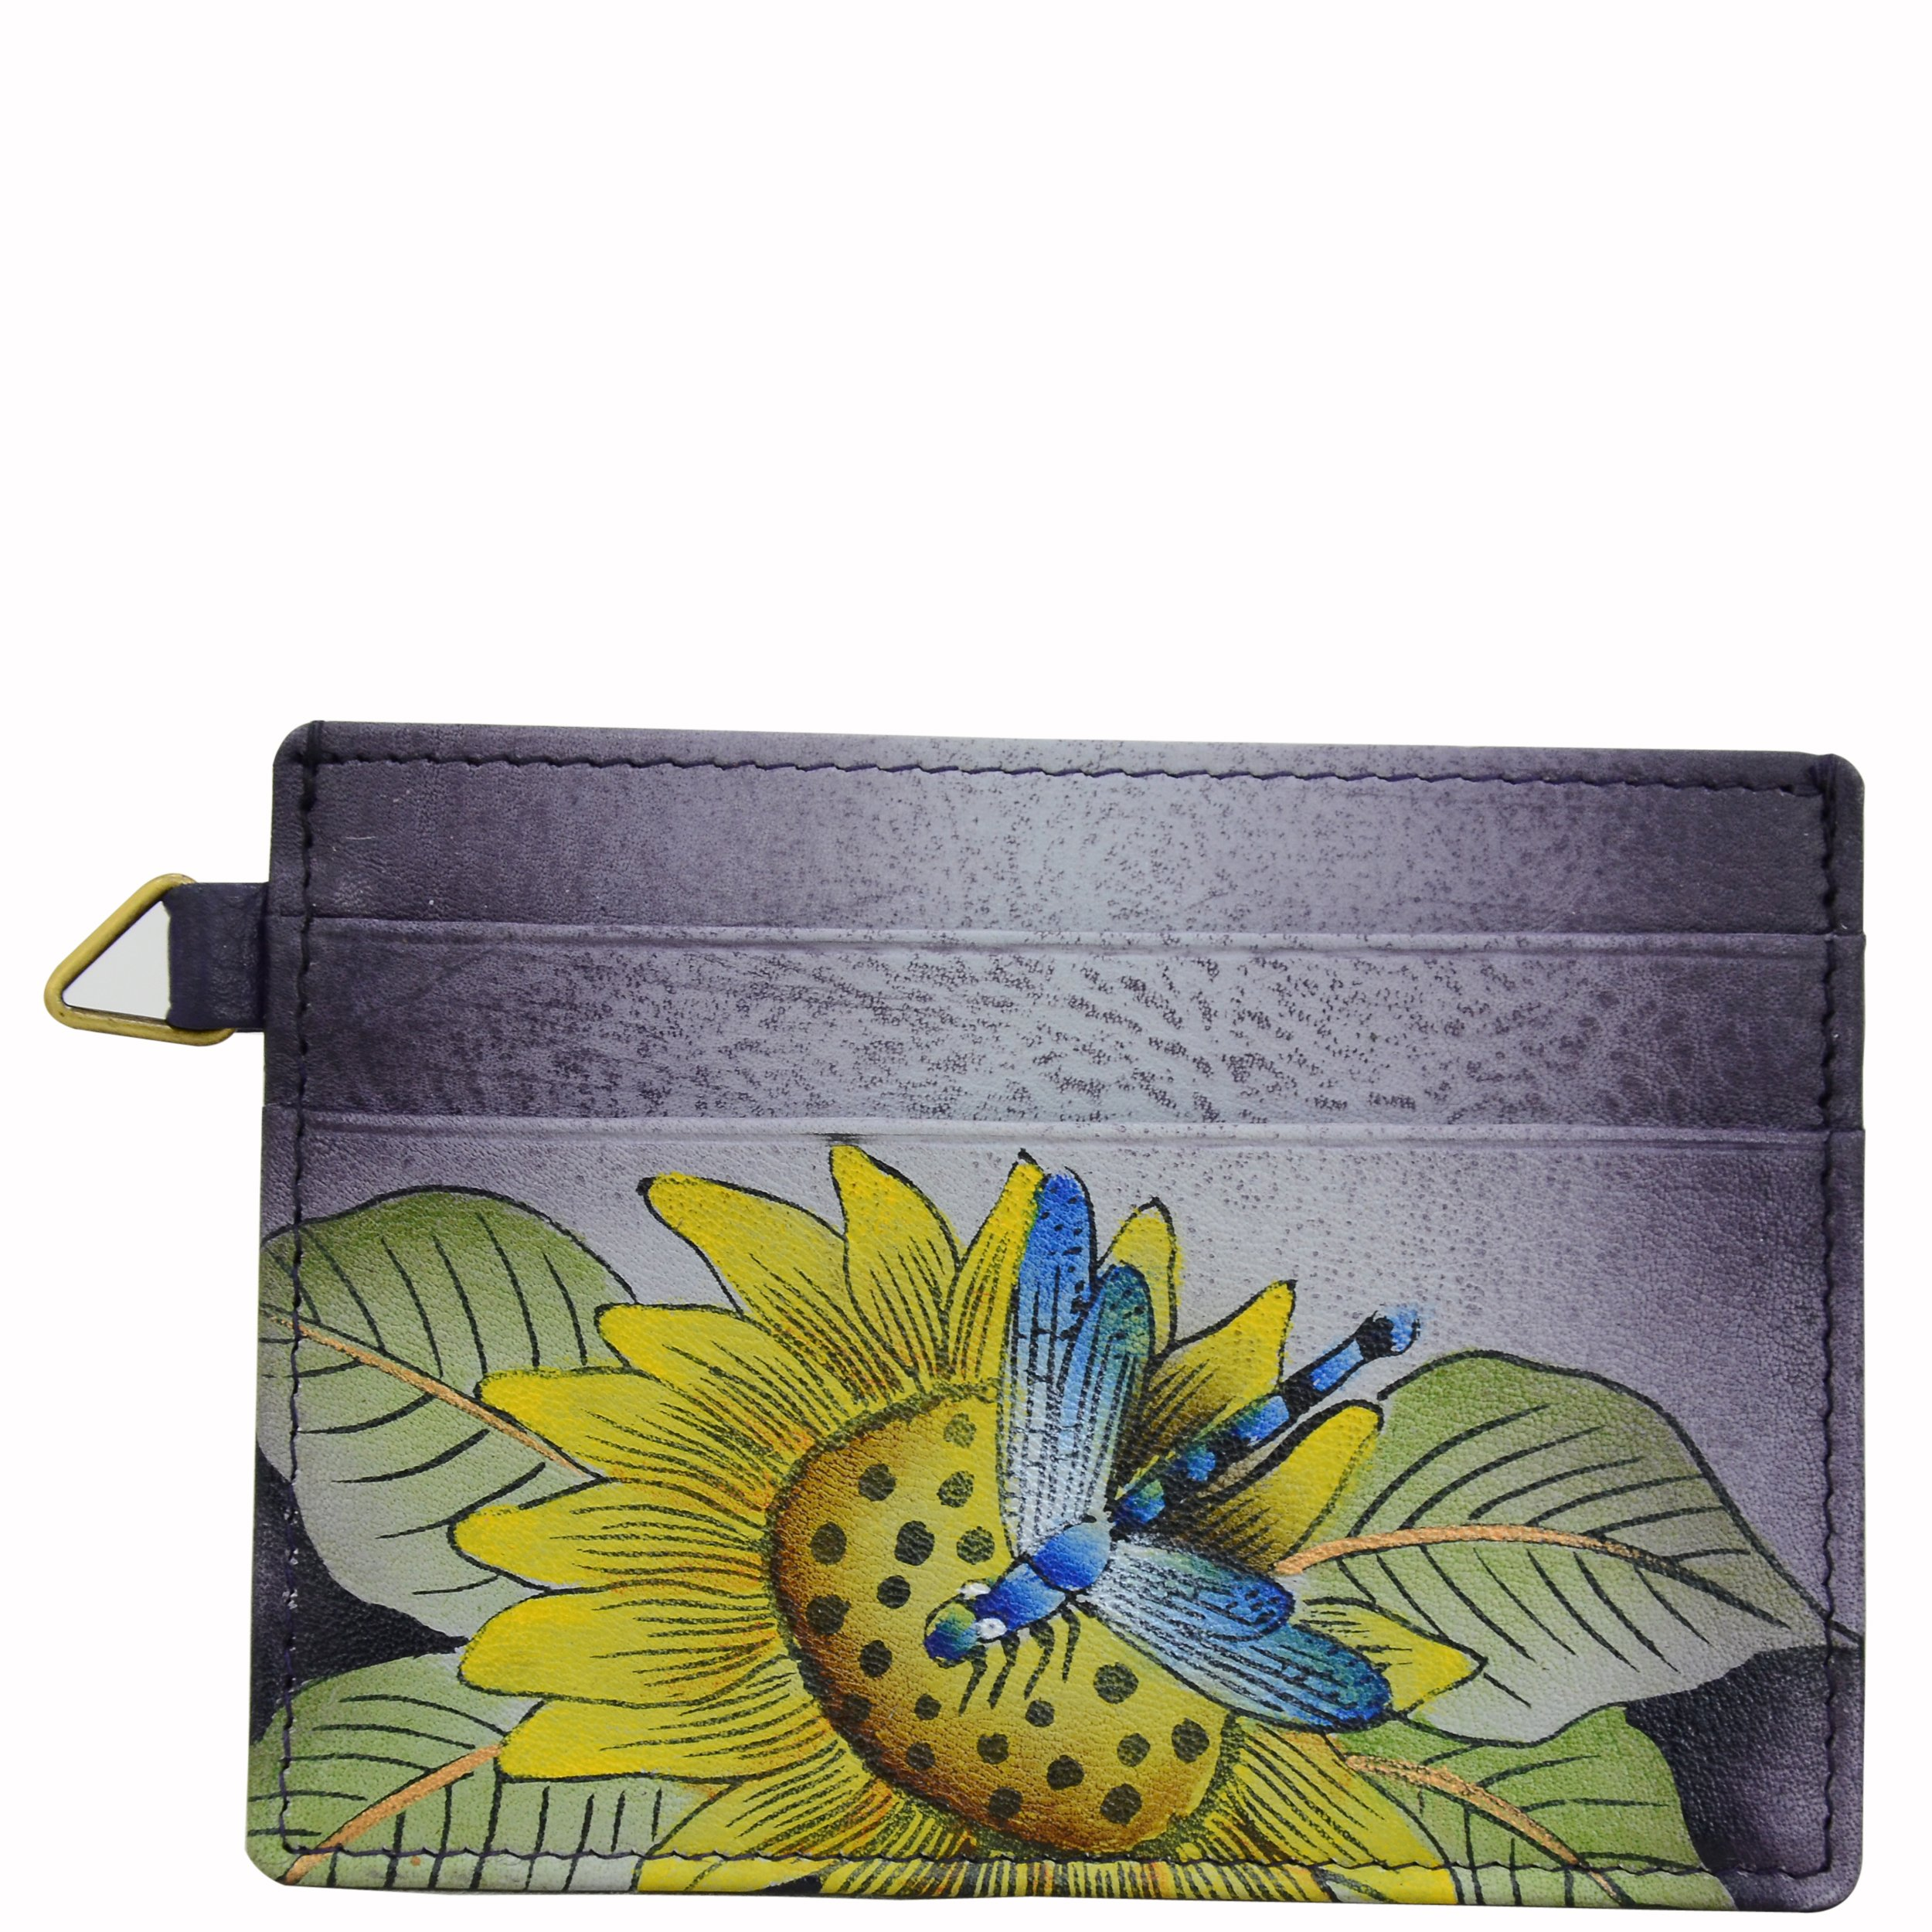 Anna by Anuschka Credit Card Case | Genuine Leather, Hand-painted Original Art | Tuscan Paradise by Anna by Anuschka